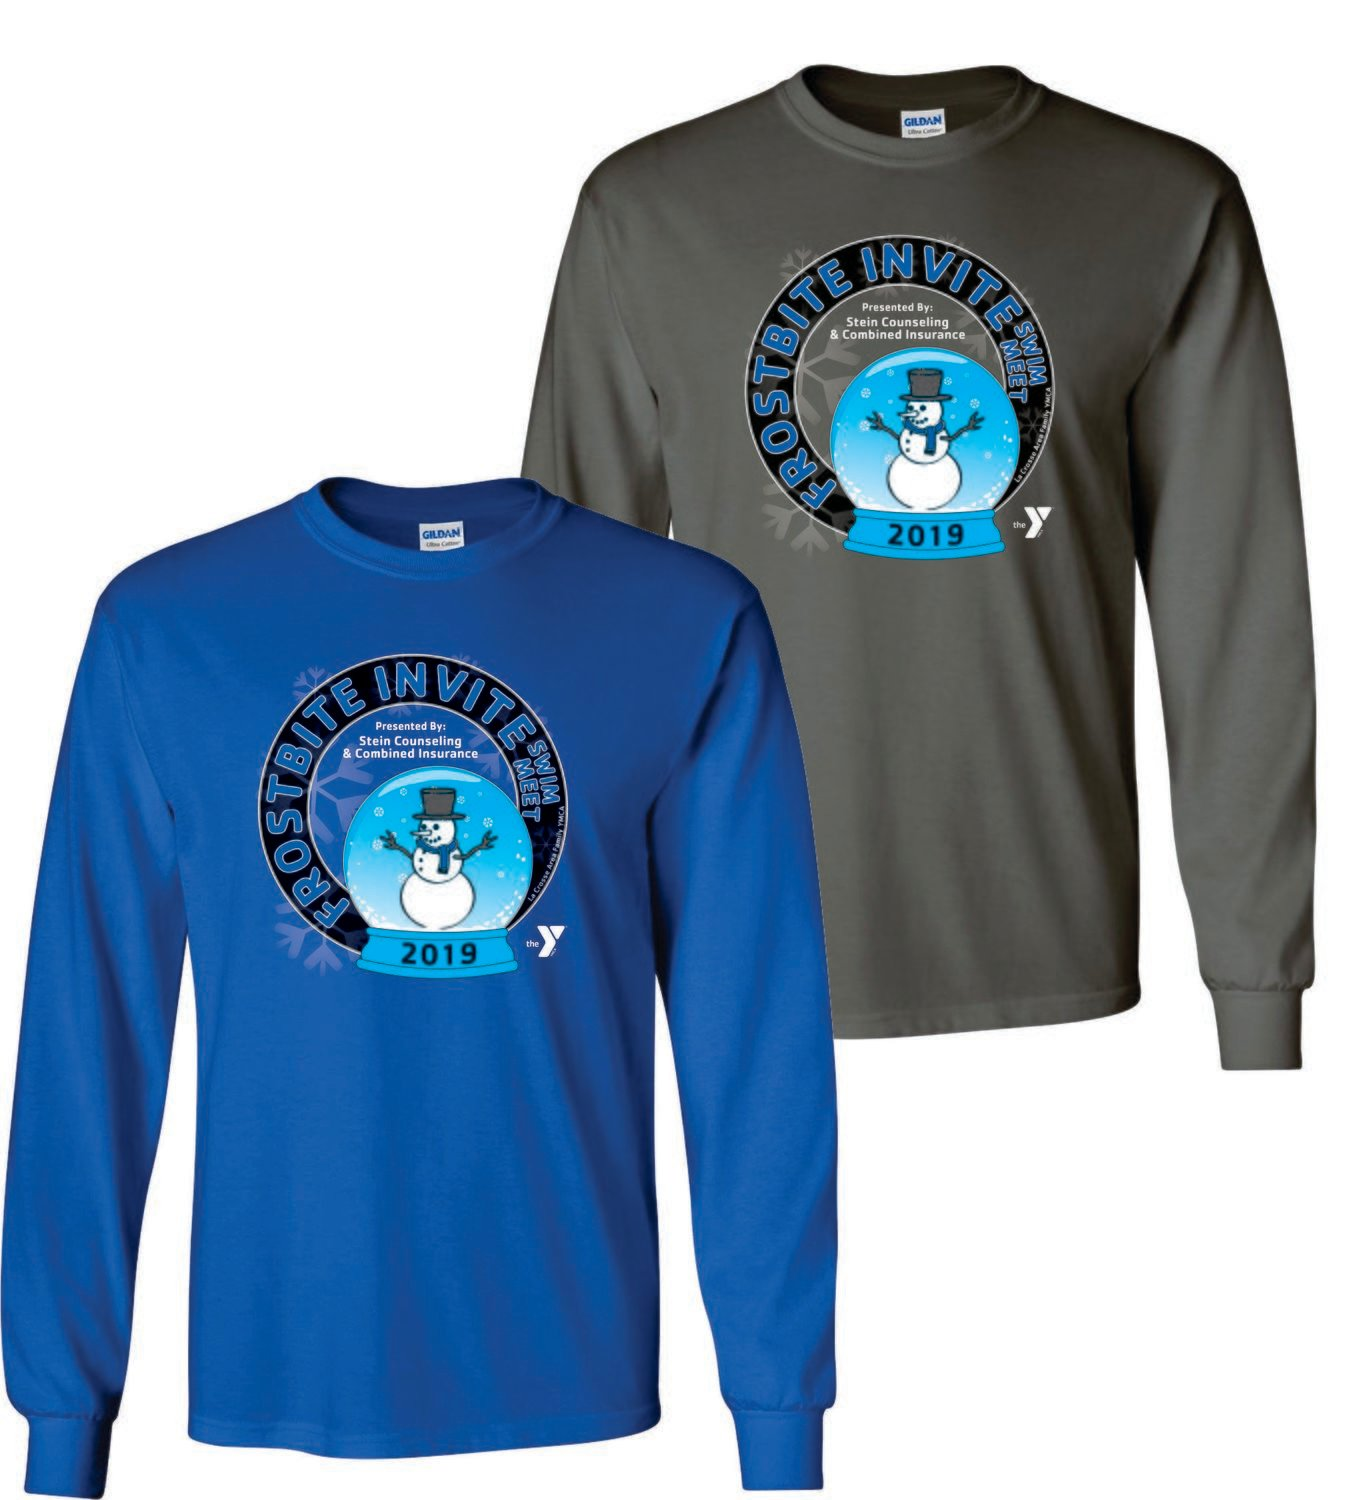 Long Sleeve Cotton T-shirts